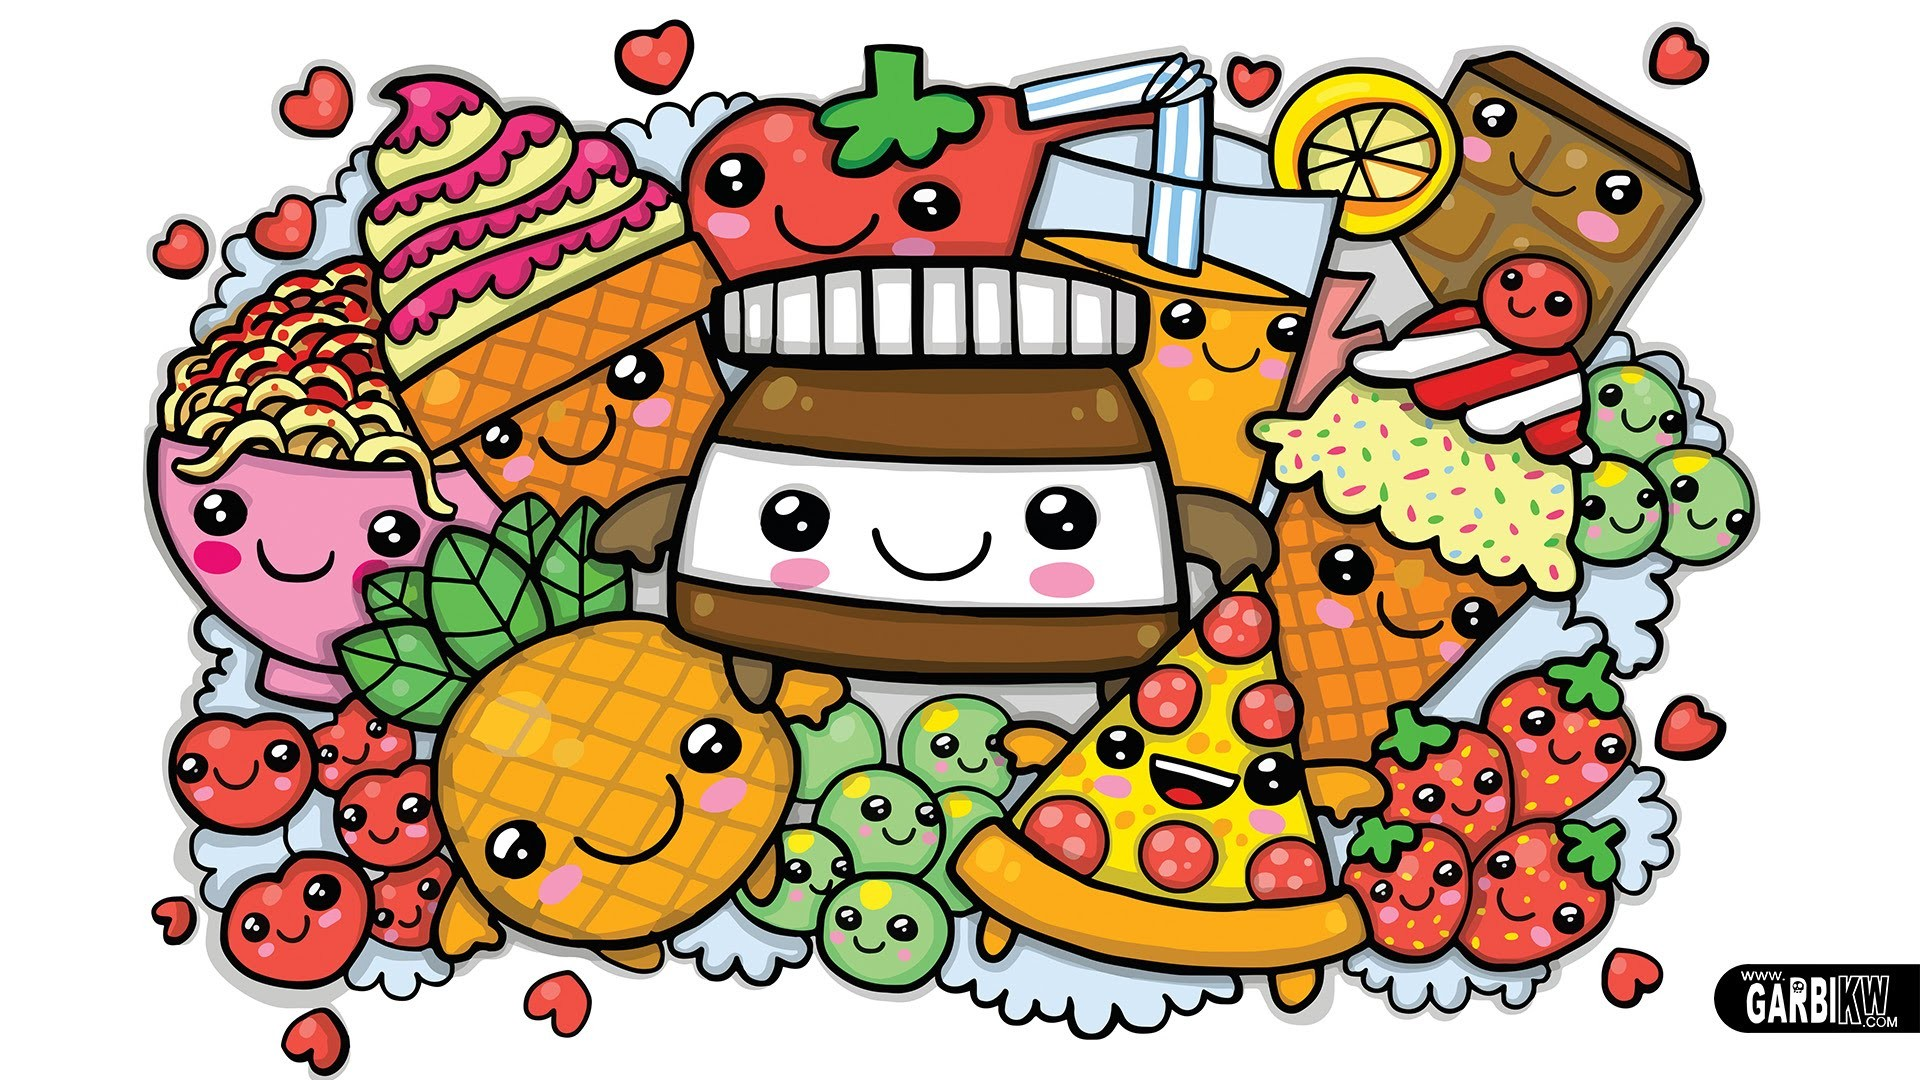 Cute kawaii food wallpaper 57 images - Kawaii food wallpaper ...